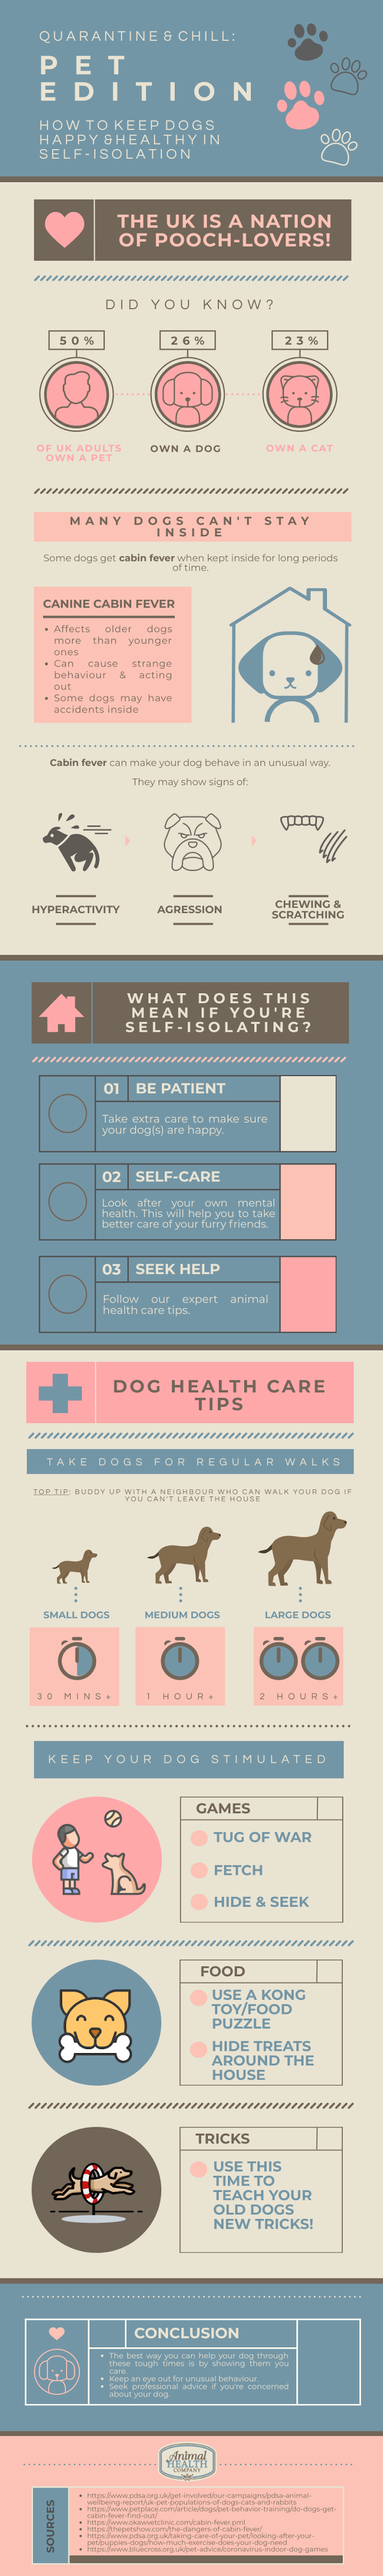 How to Keep Dogs Healthy and Happy in Lockdown #infographic